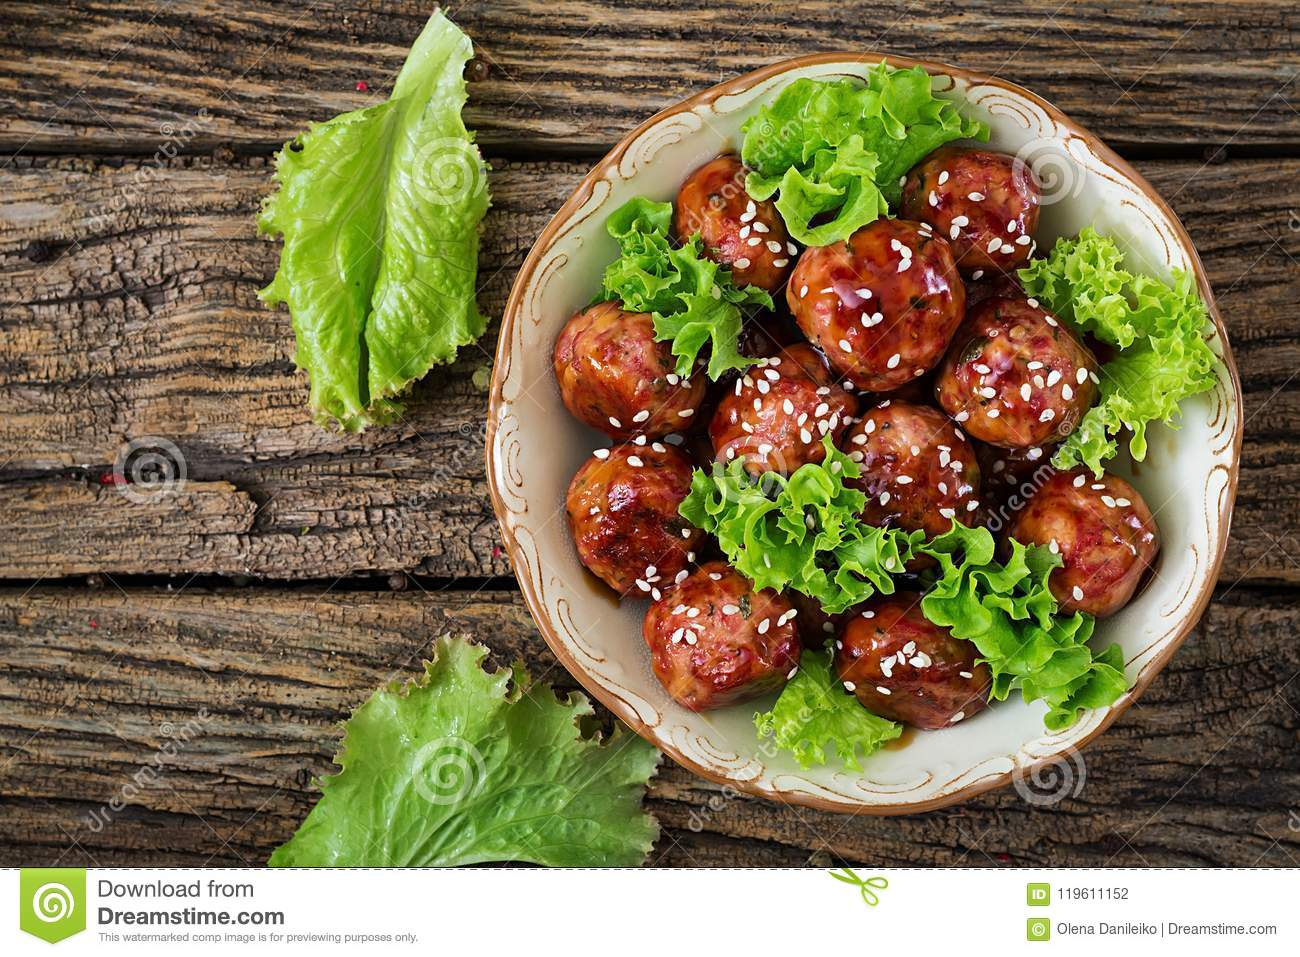 Meatballs with beef in sweet and sour sauce.